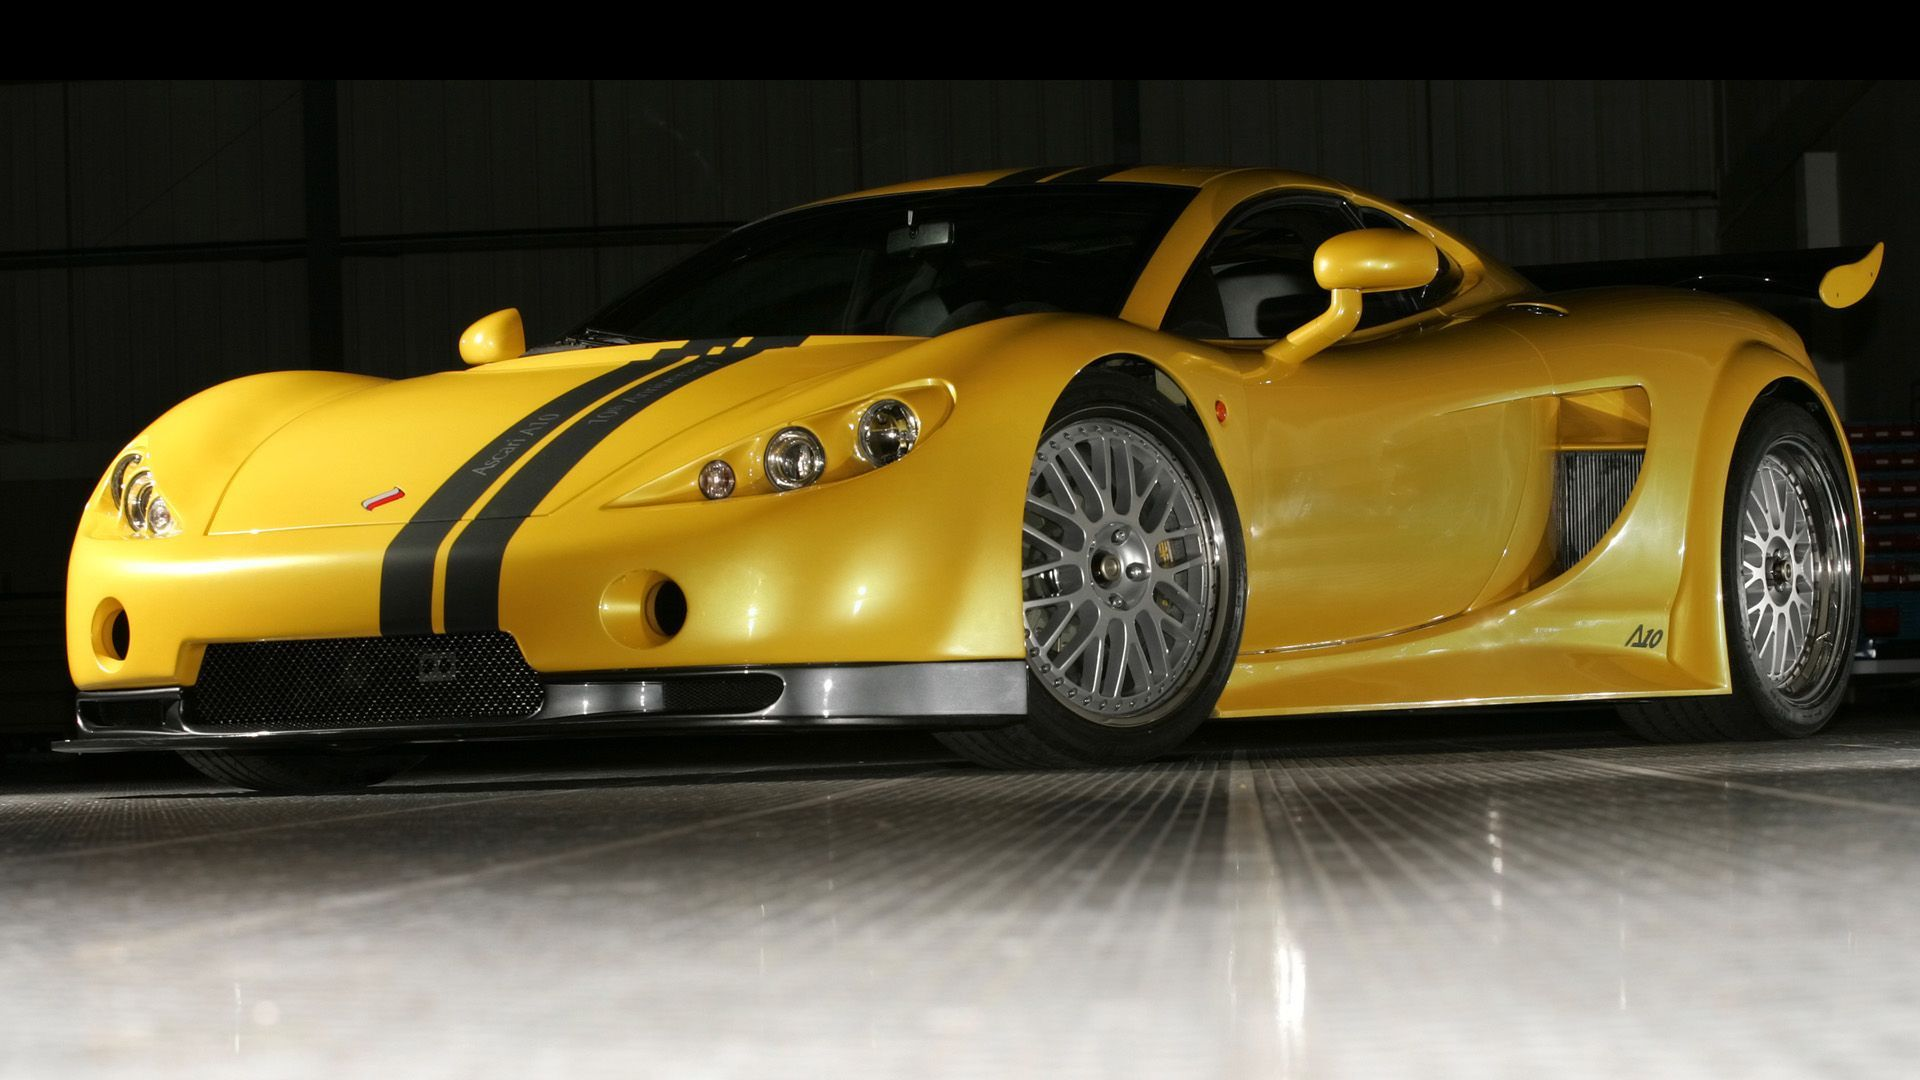 Cars colored yellow - Yellow Color Car Hd Wallpaper Free Download